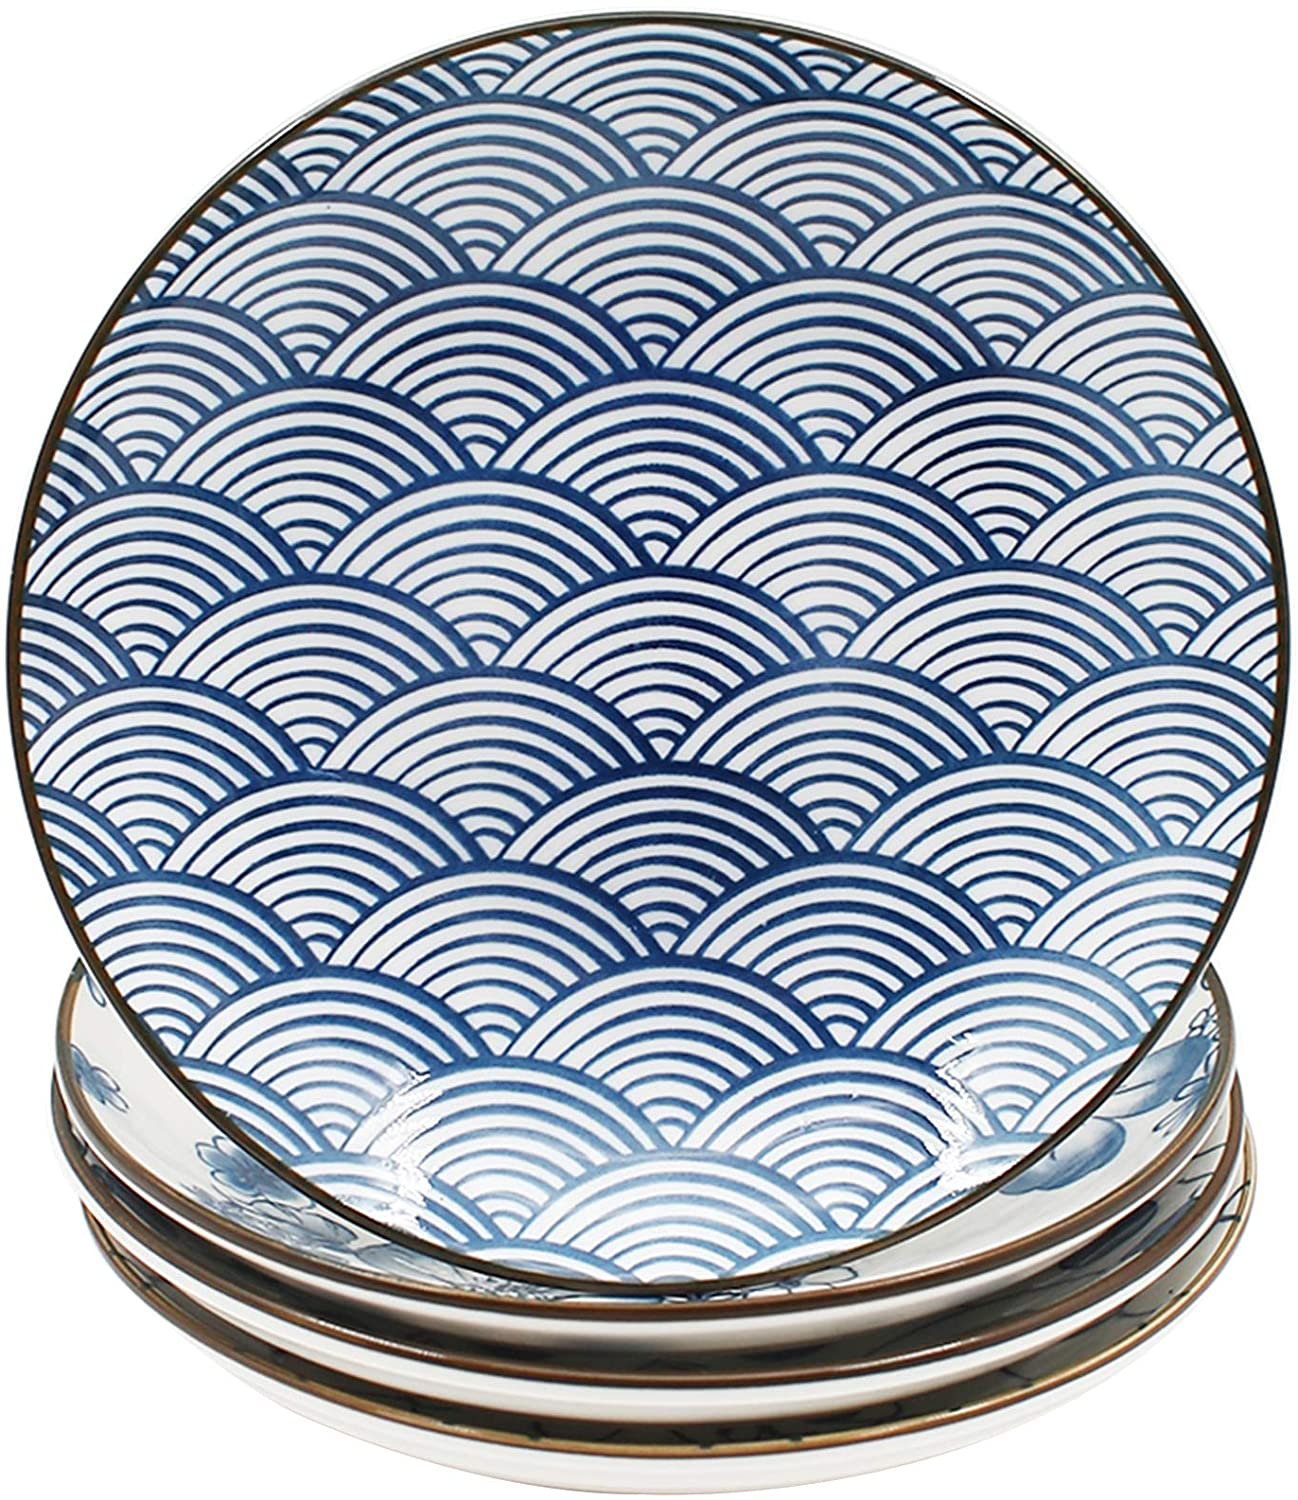 YALONG Ceramic Dinner Plate Set 7 Inch Appetizer Shallow Plates for Lunches, Cheese and Crackers Salad, Dessert Set of 4 Assorted Motifs